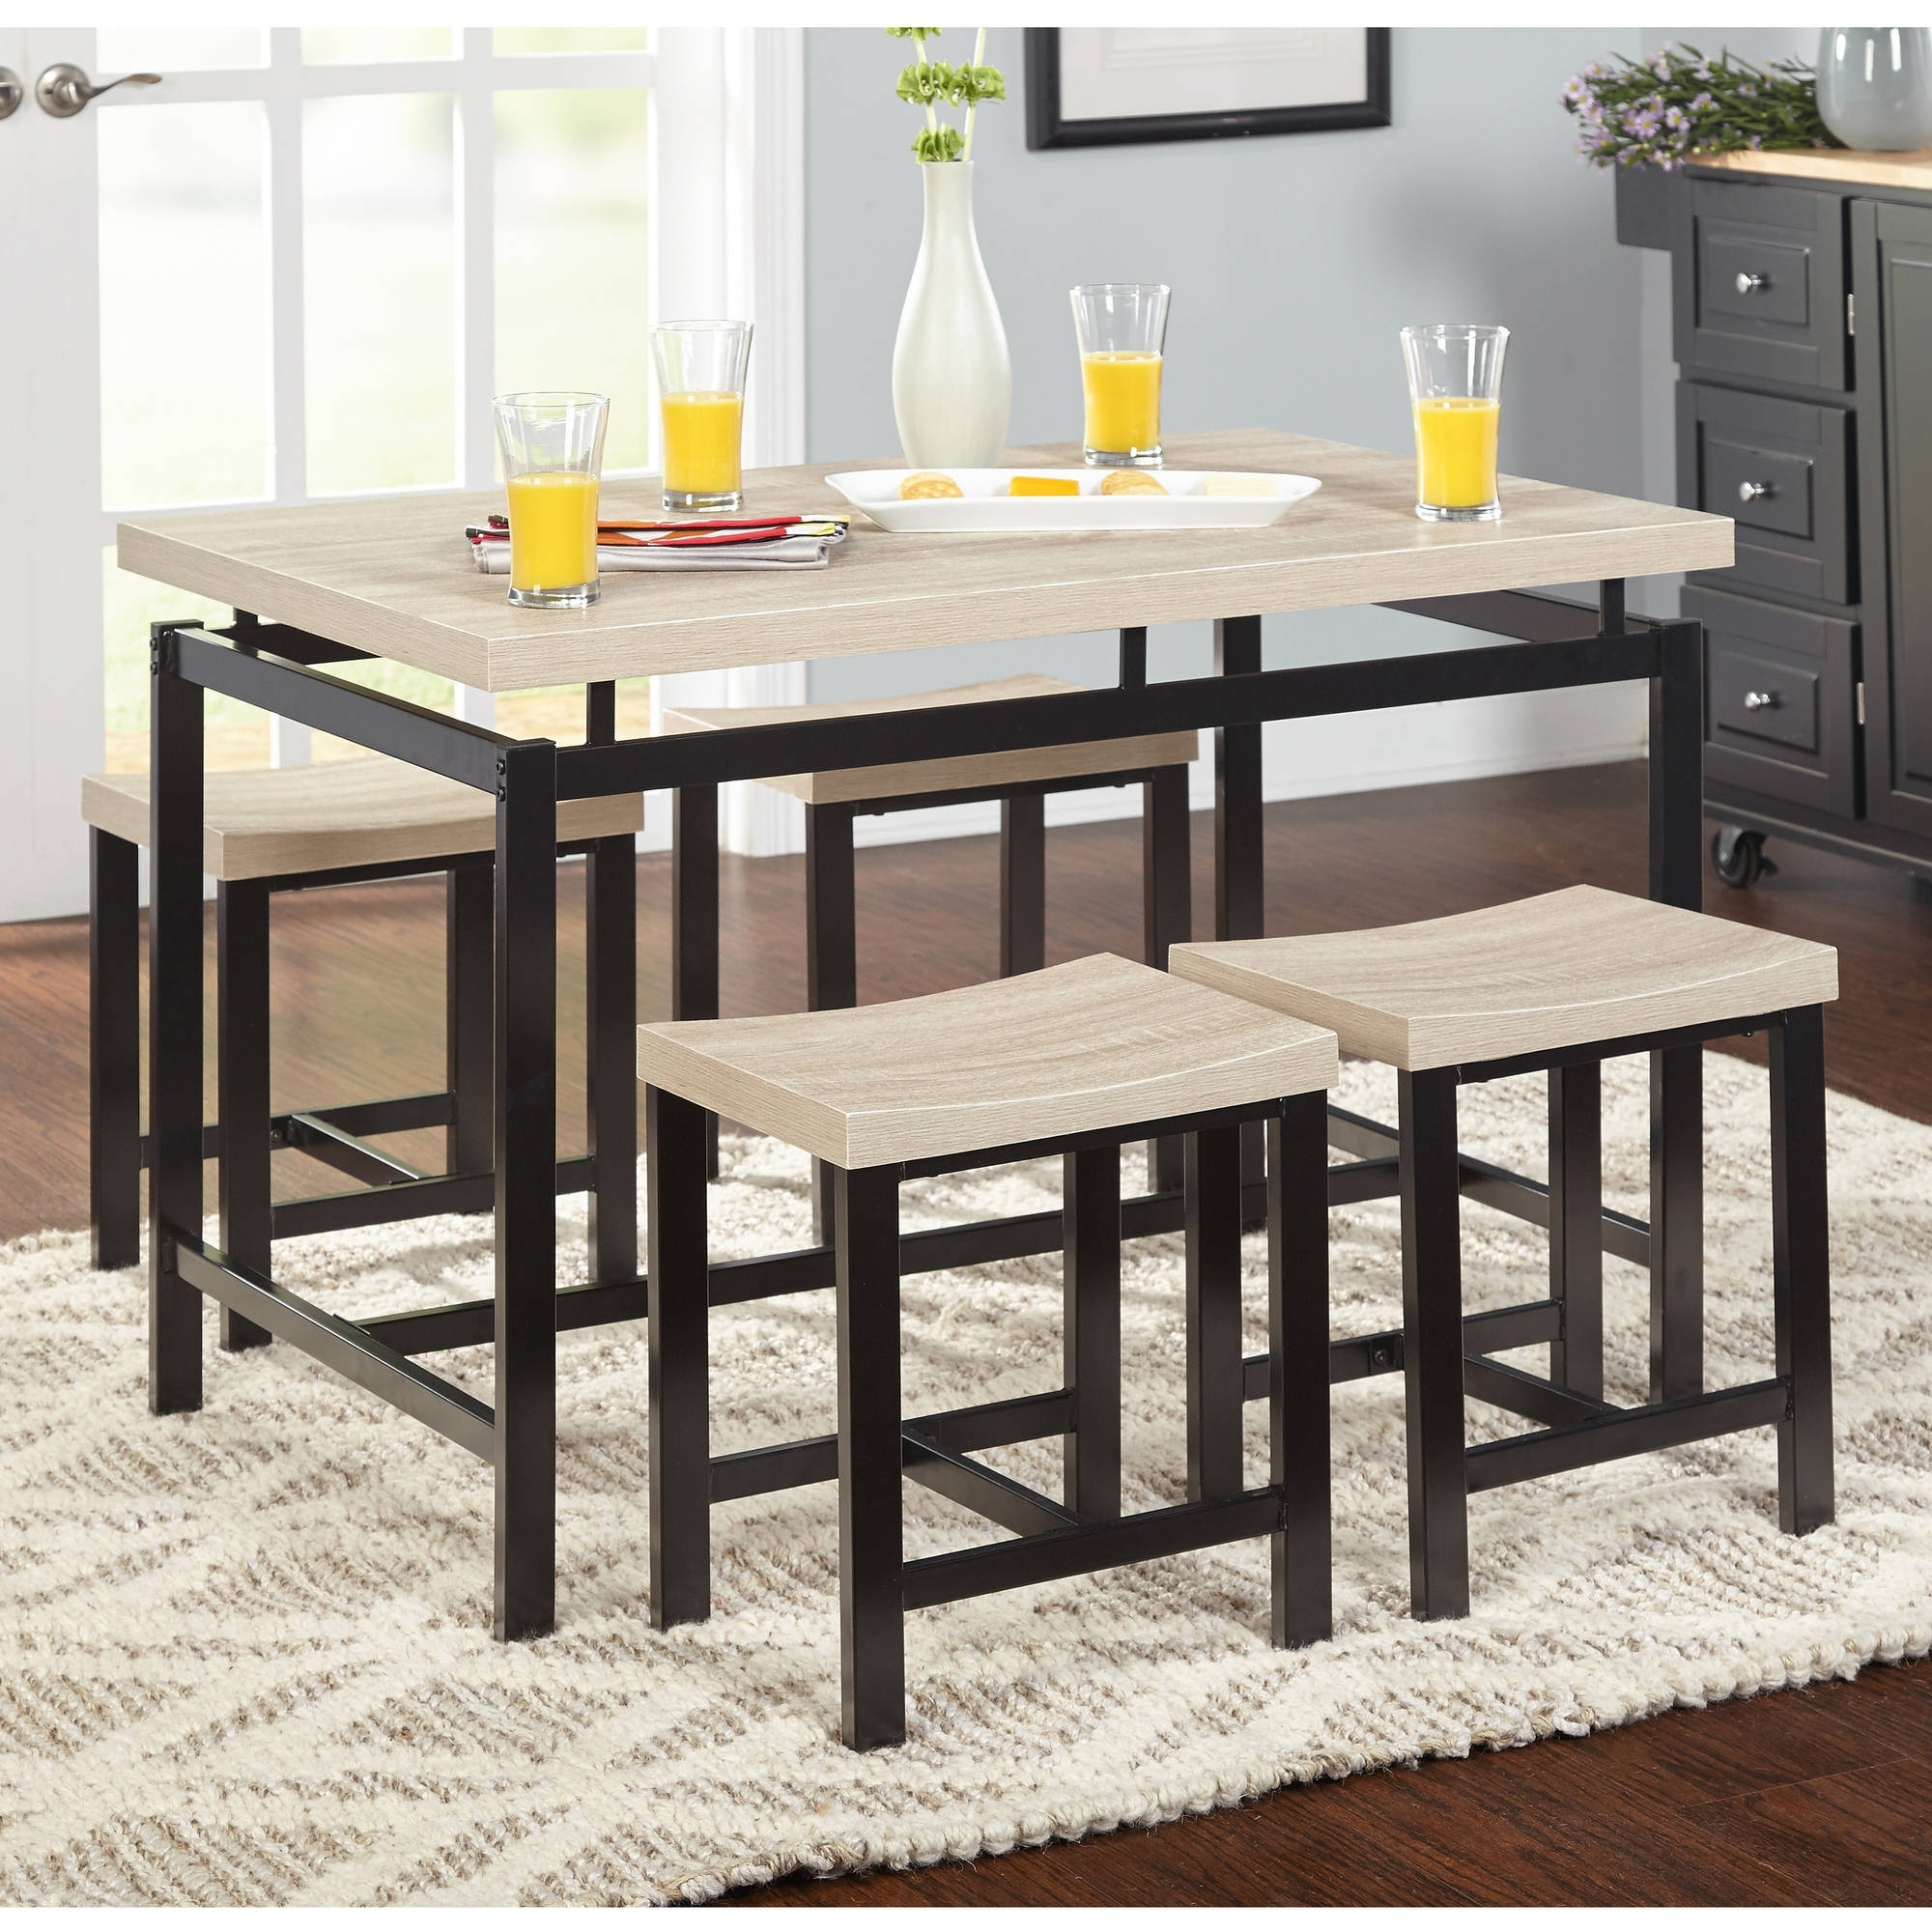 Dining Sets Intended For Recent 5 Piece Delano Dining Set, Natural – Walmart (View 14 of 25)